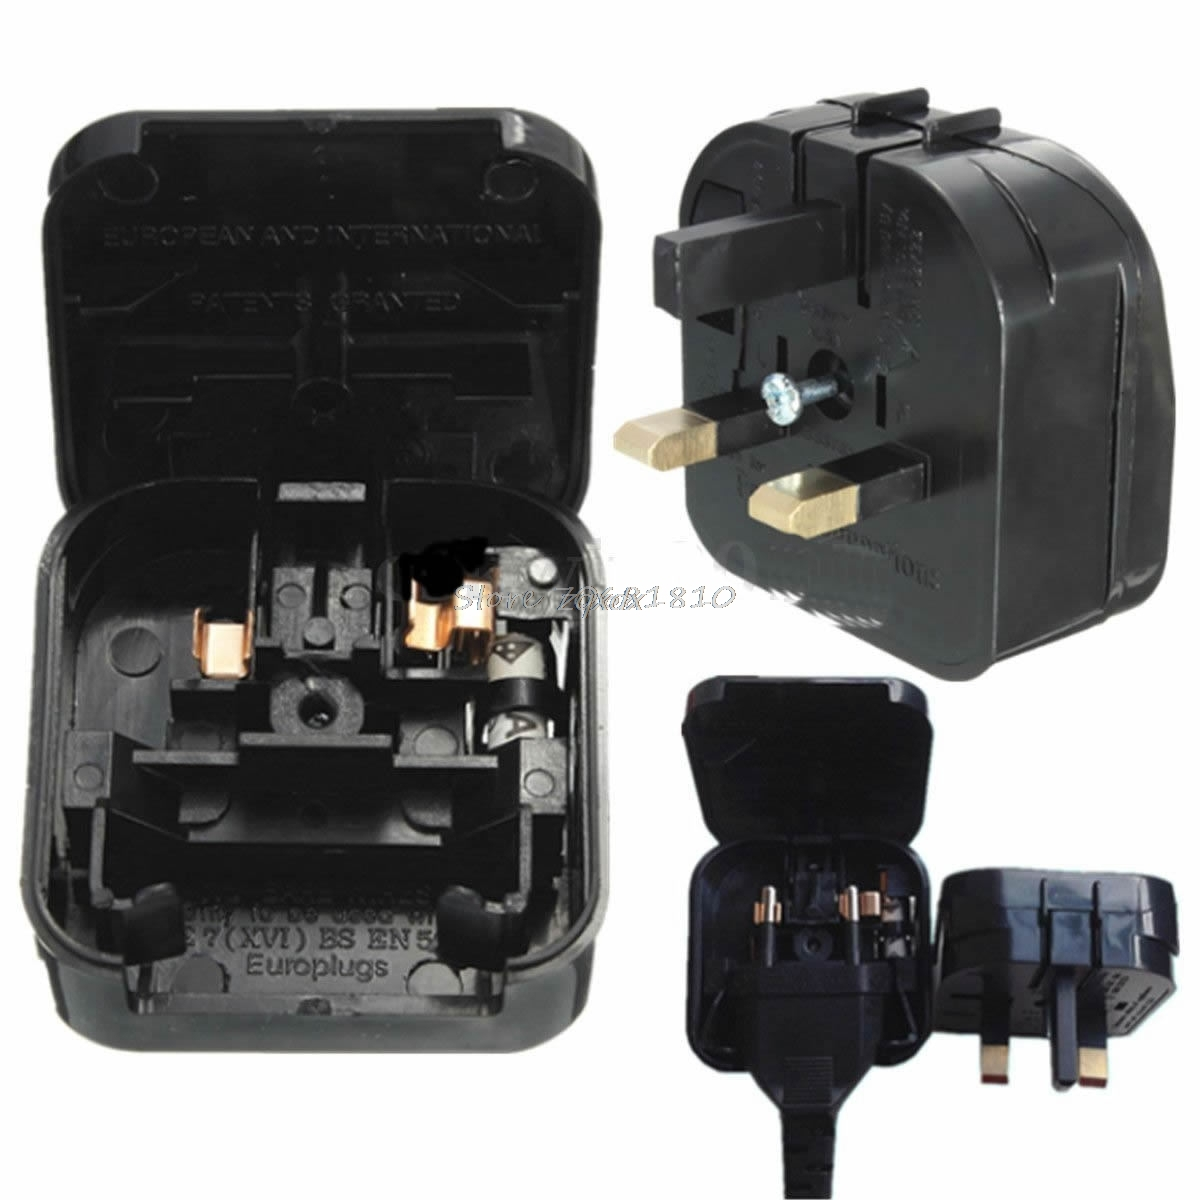 New European Euro EU 2 Pin to <font><b>UK</b></font> <font><b>3Pin</b></font> <font><b>Plug</b></font> Adapter Power Socket Travel Converter Whosale&Dropship image